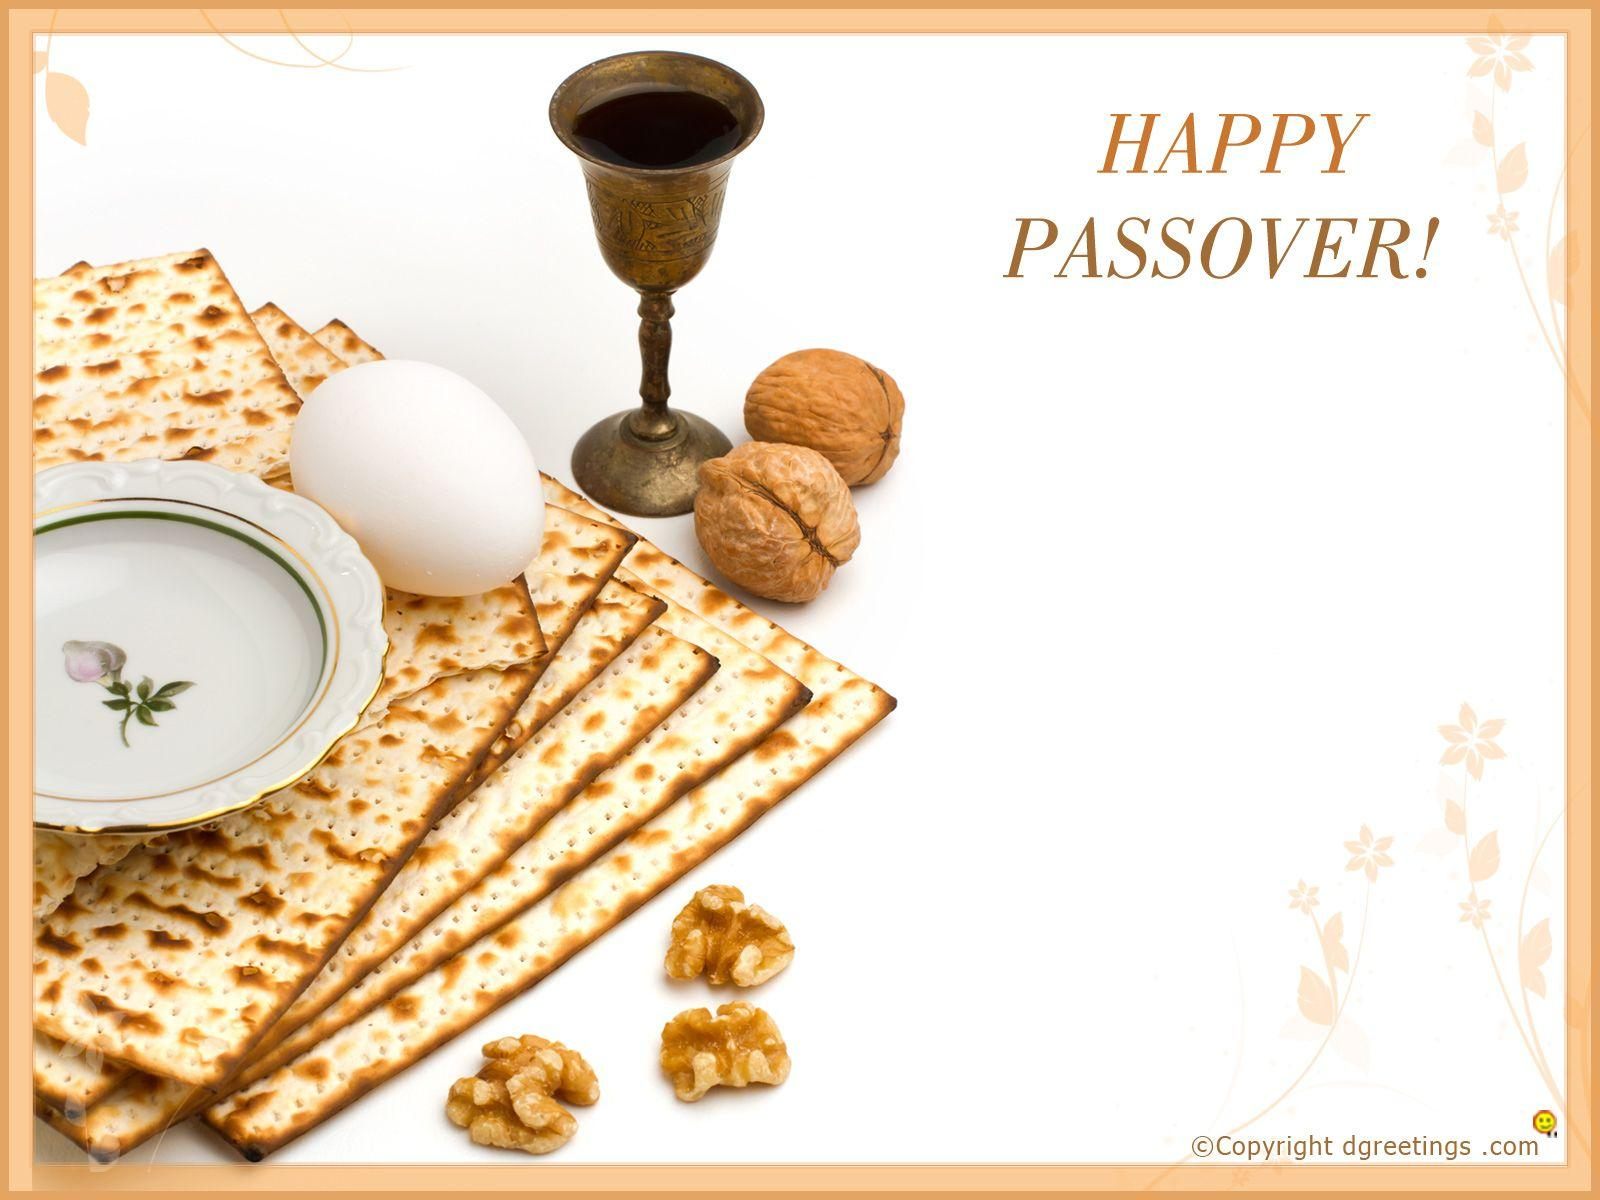 Passover Wallpaper - WallpaperSafari